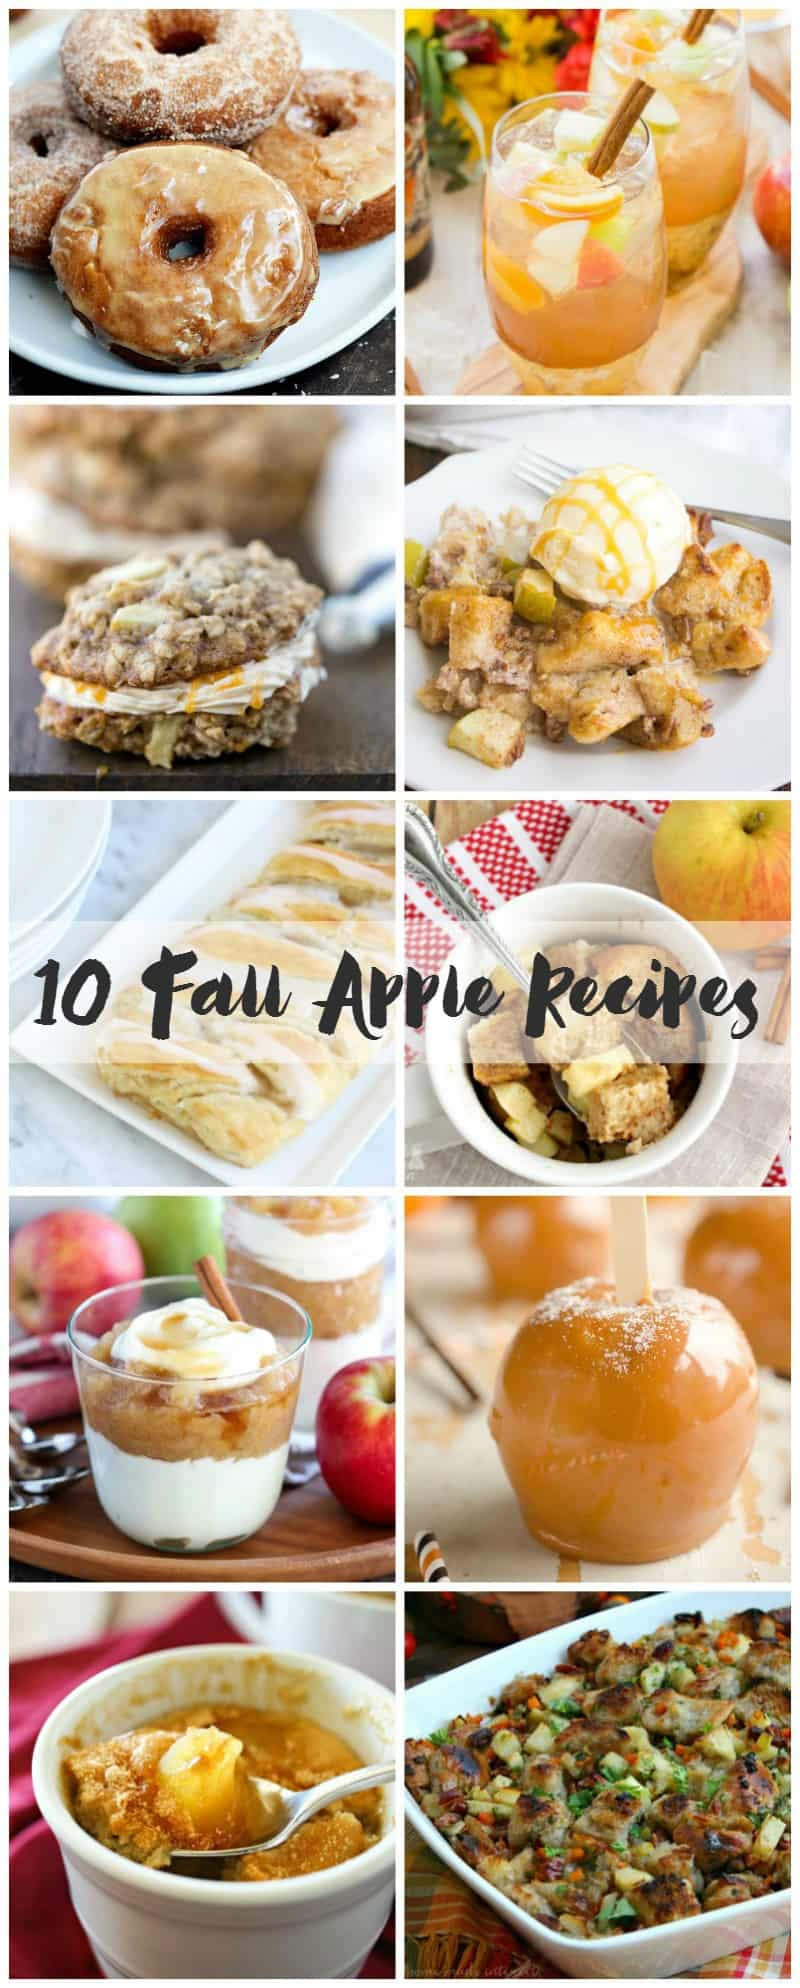 10 Fall Apple Recipes | cookingwithcurls.com #feastndevour